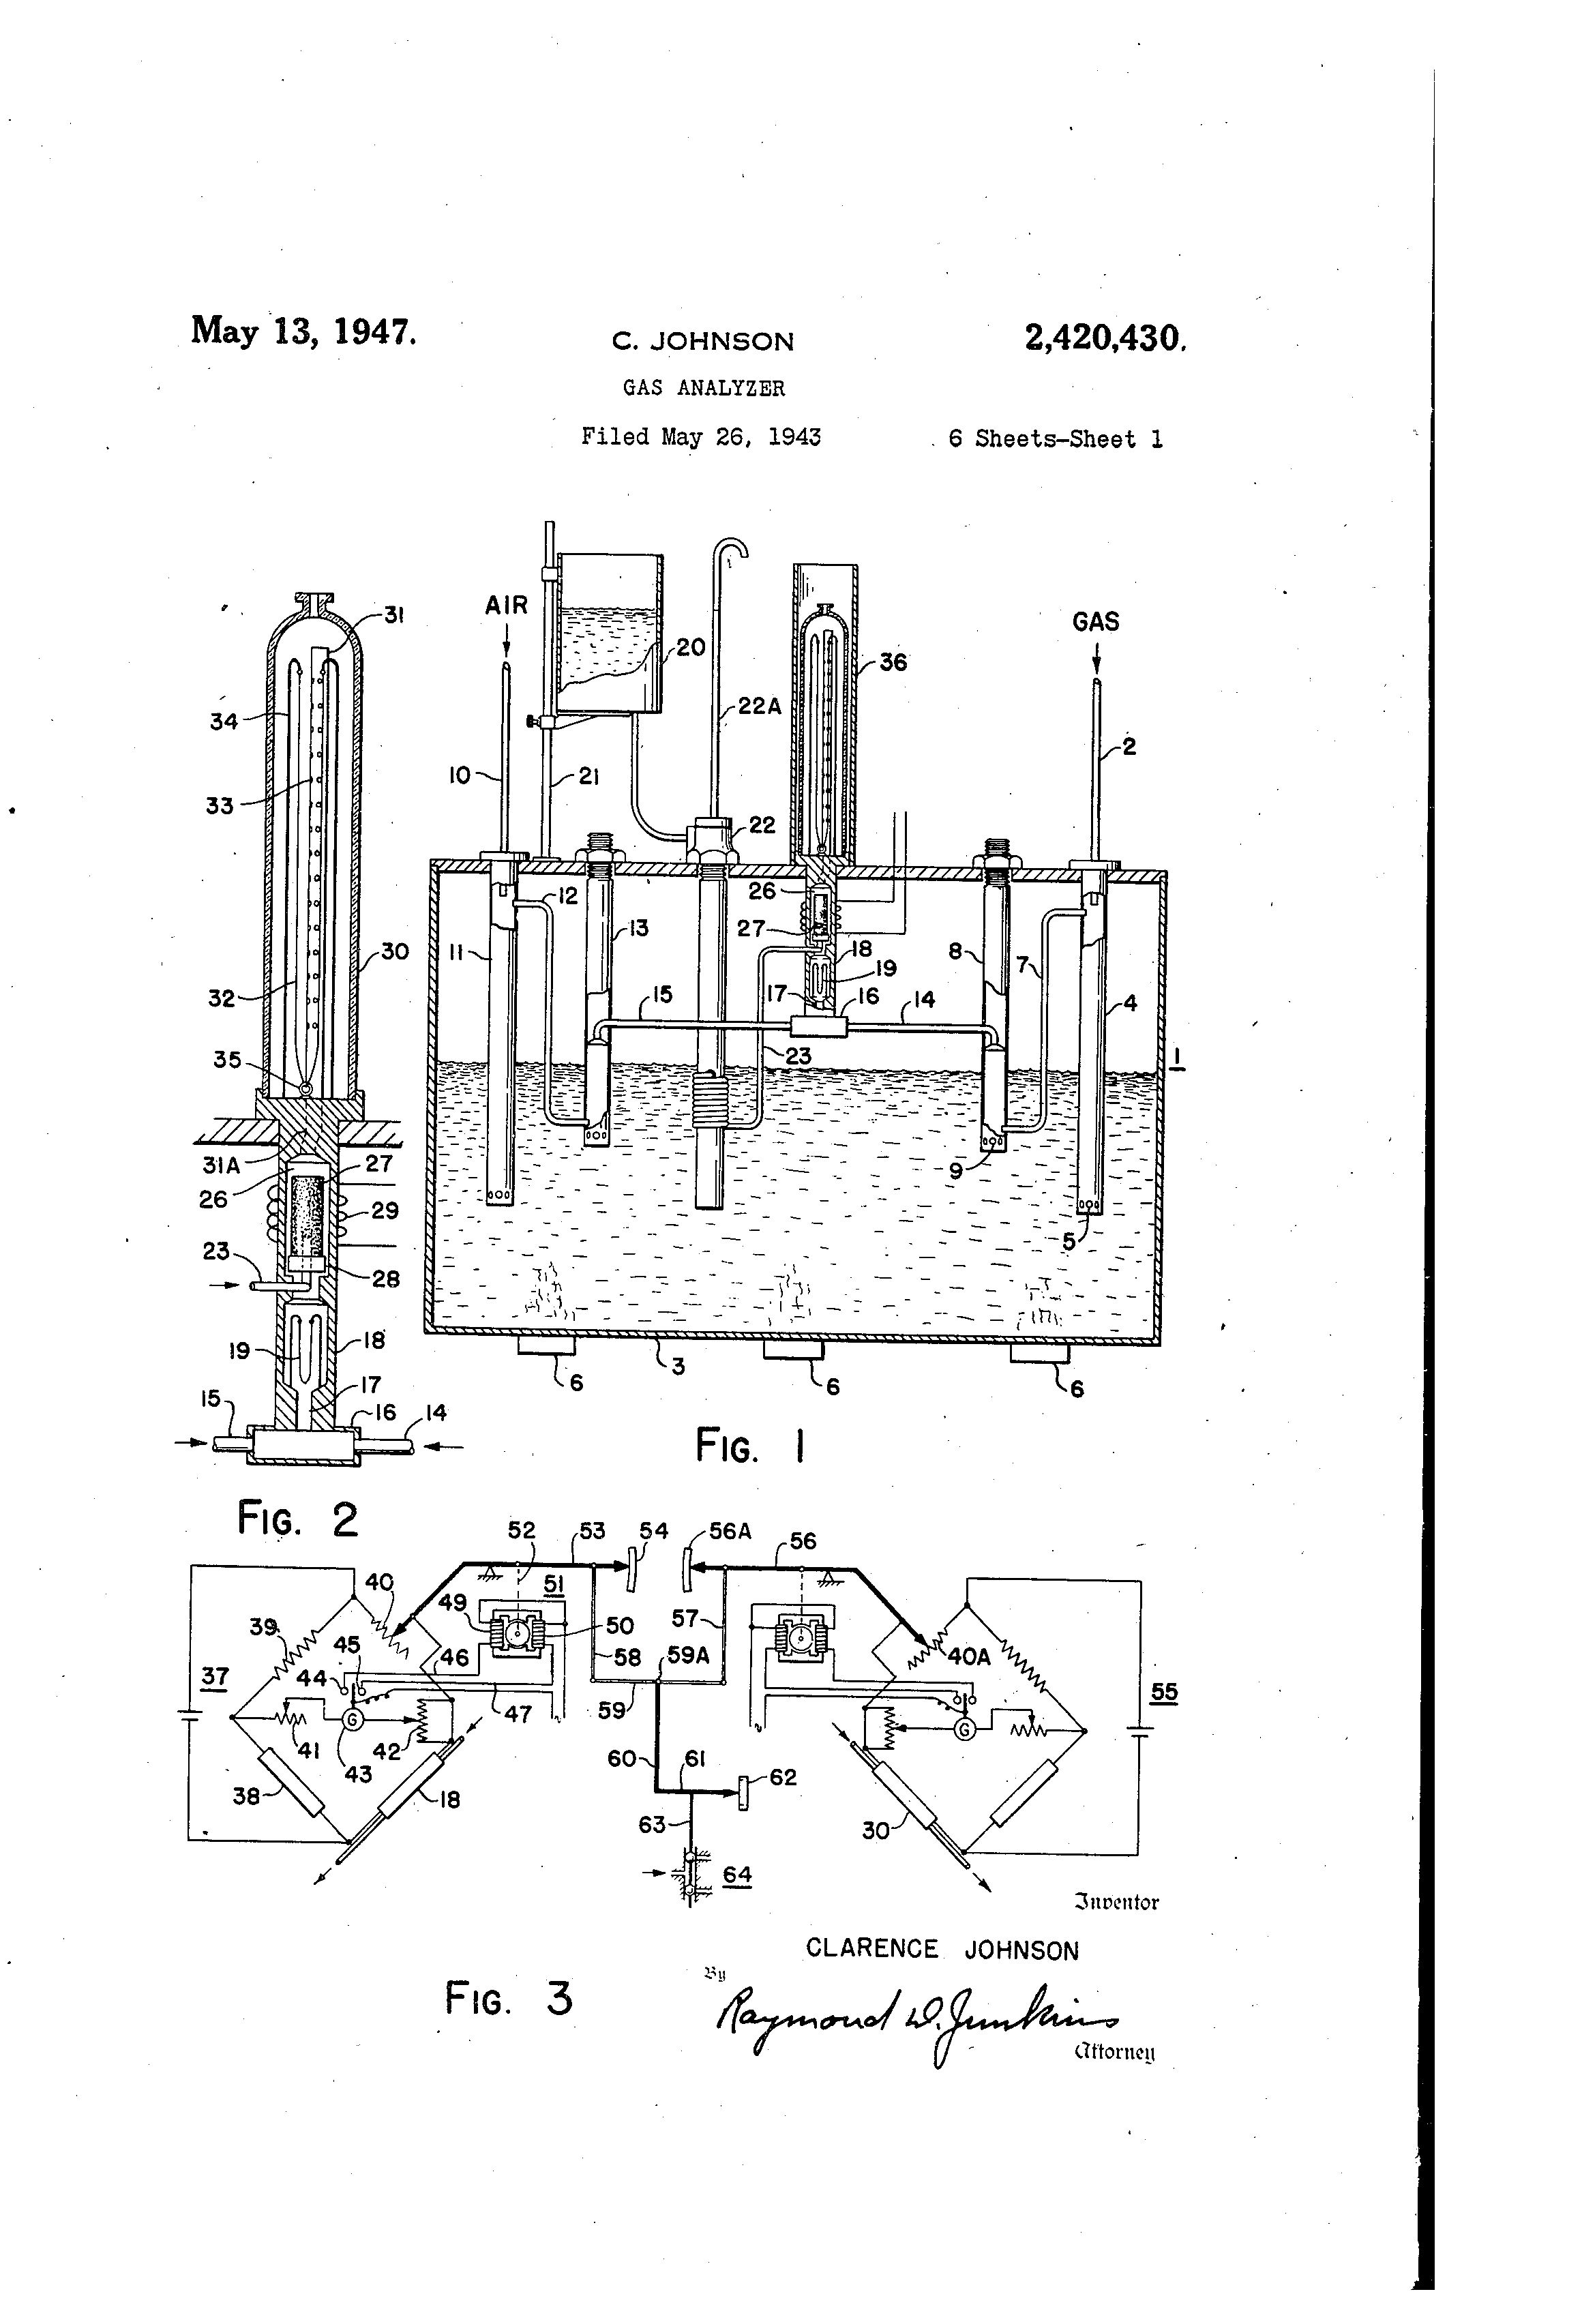 wiring diagram for a pen vaporizer the knownledge